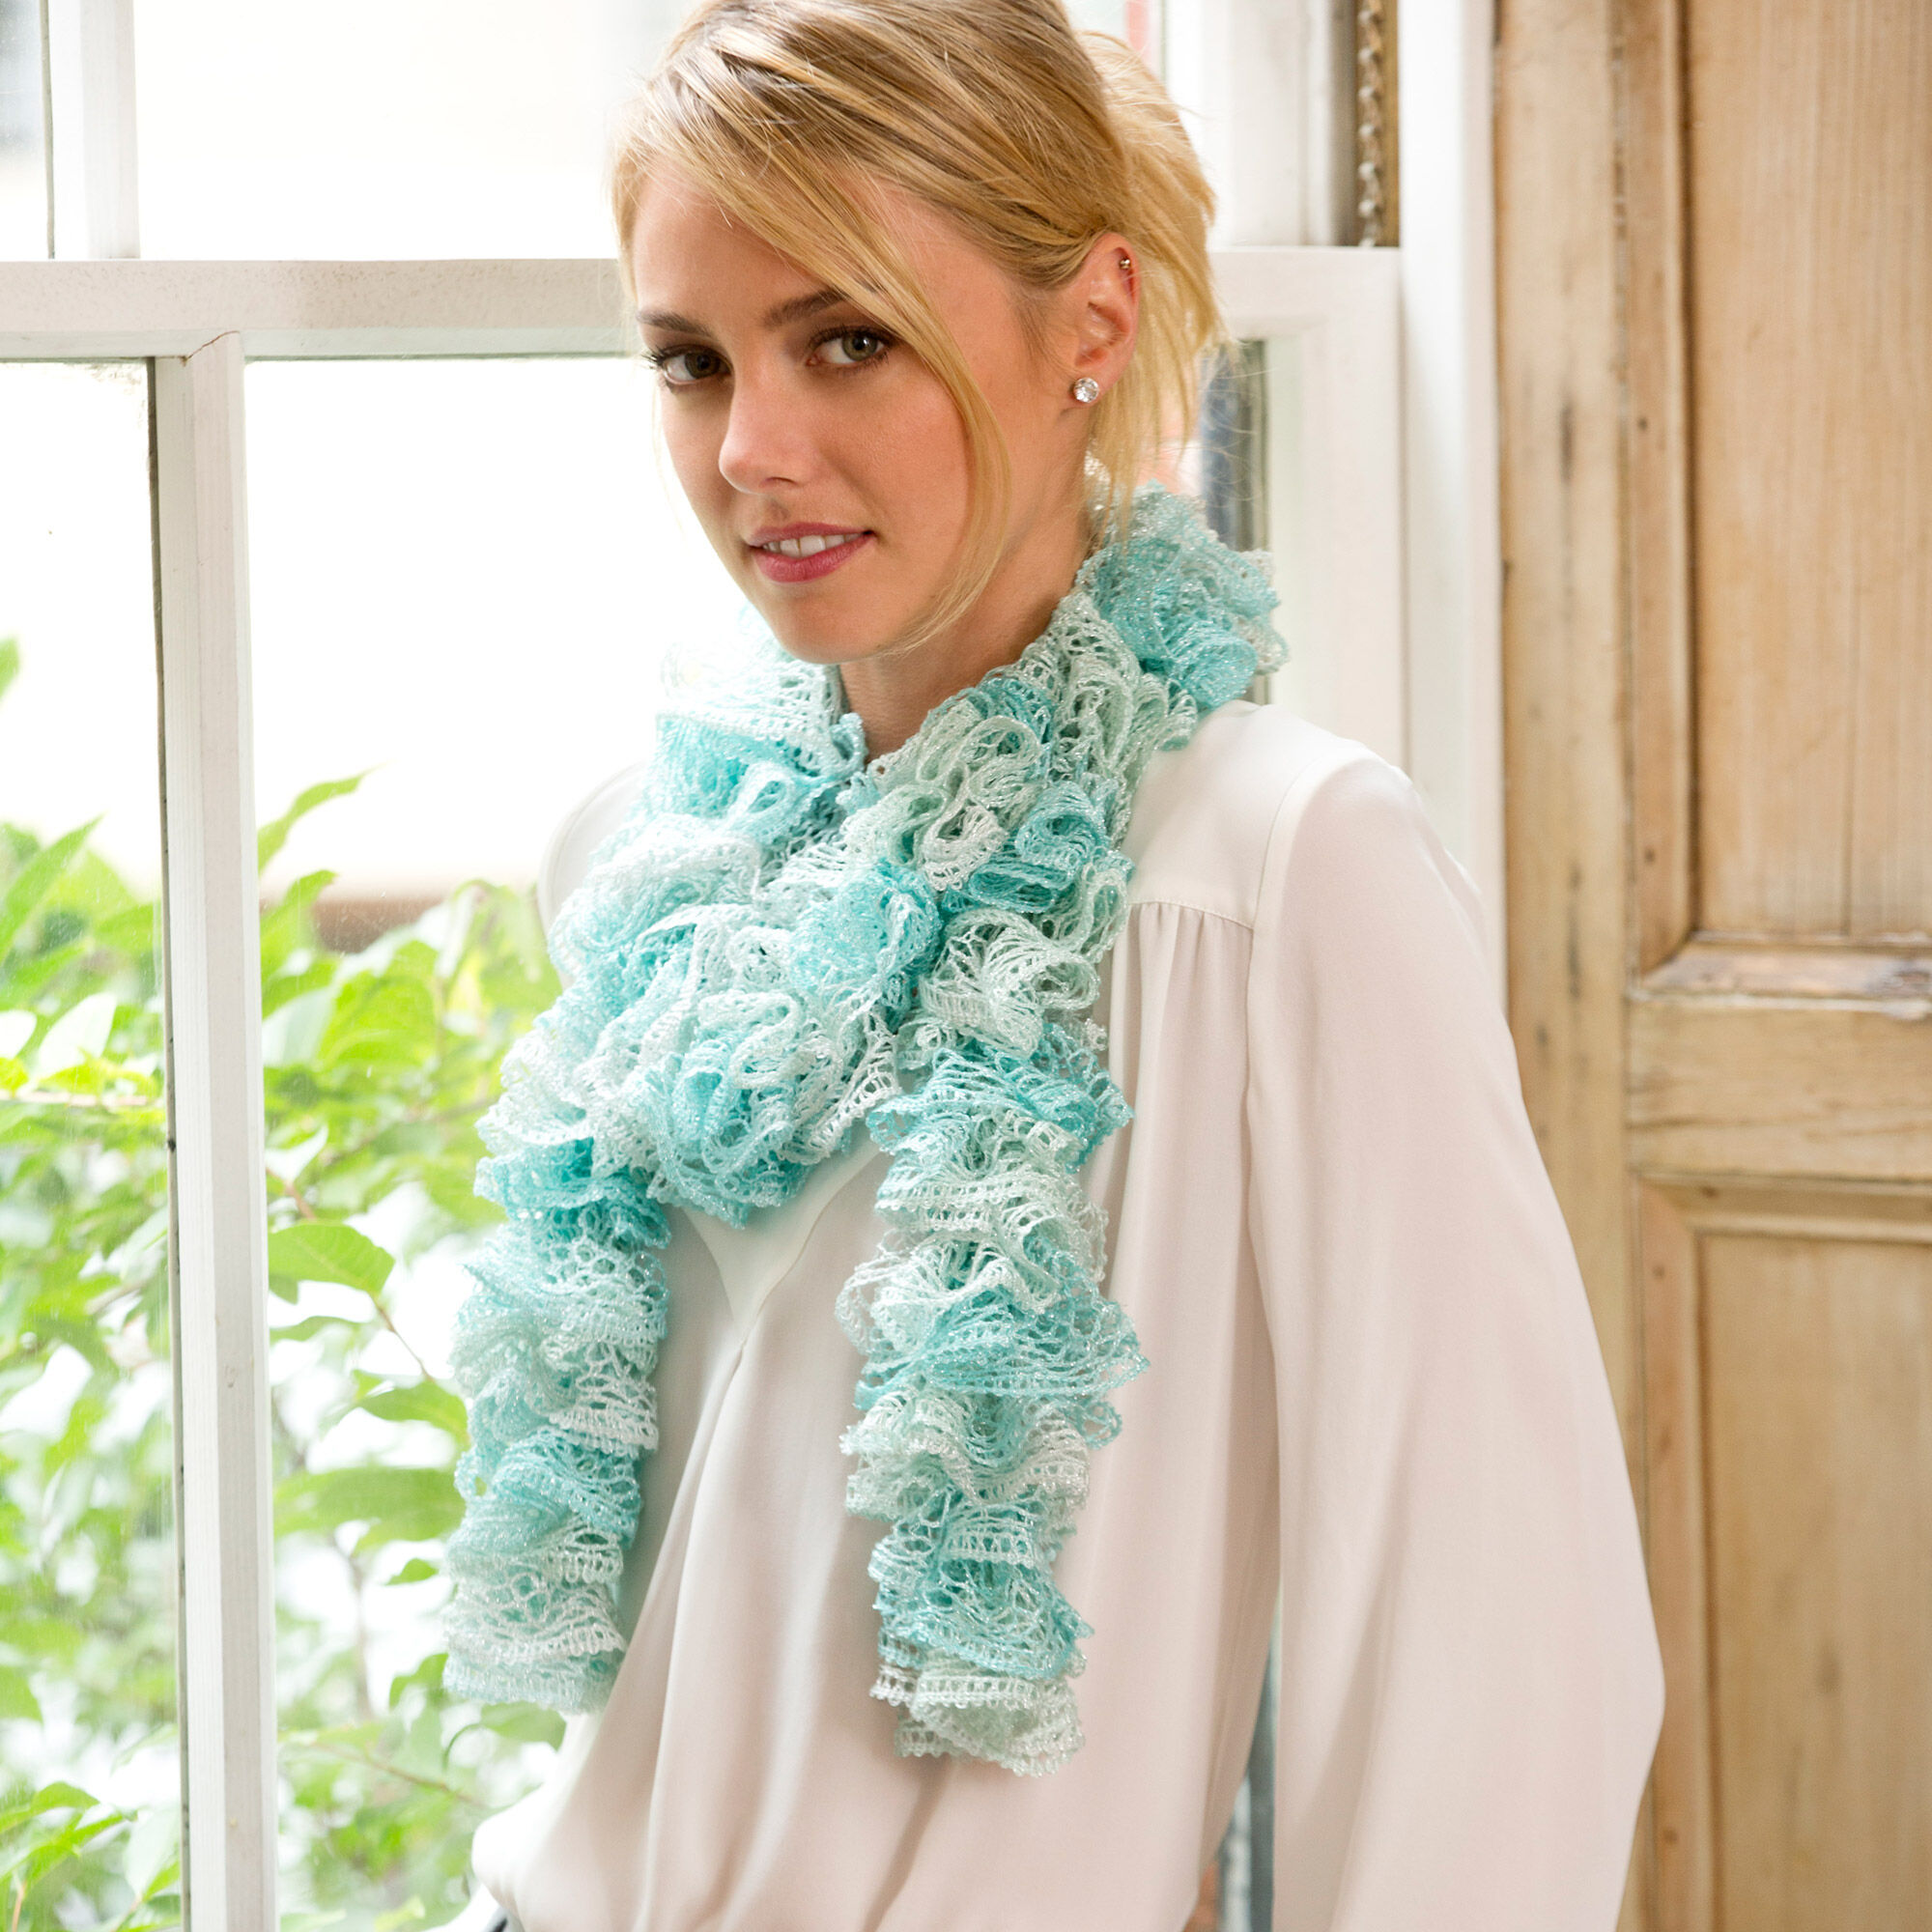 RED HEART ICY RUFFLE SCARF